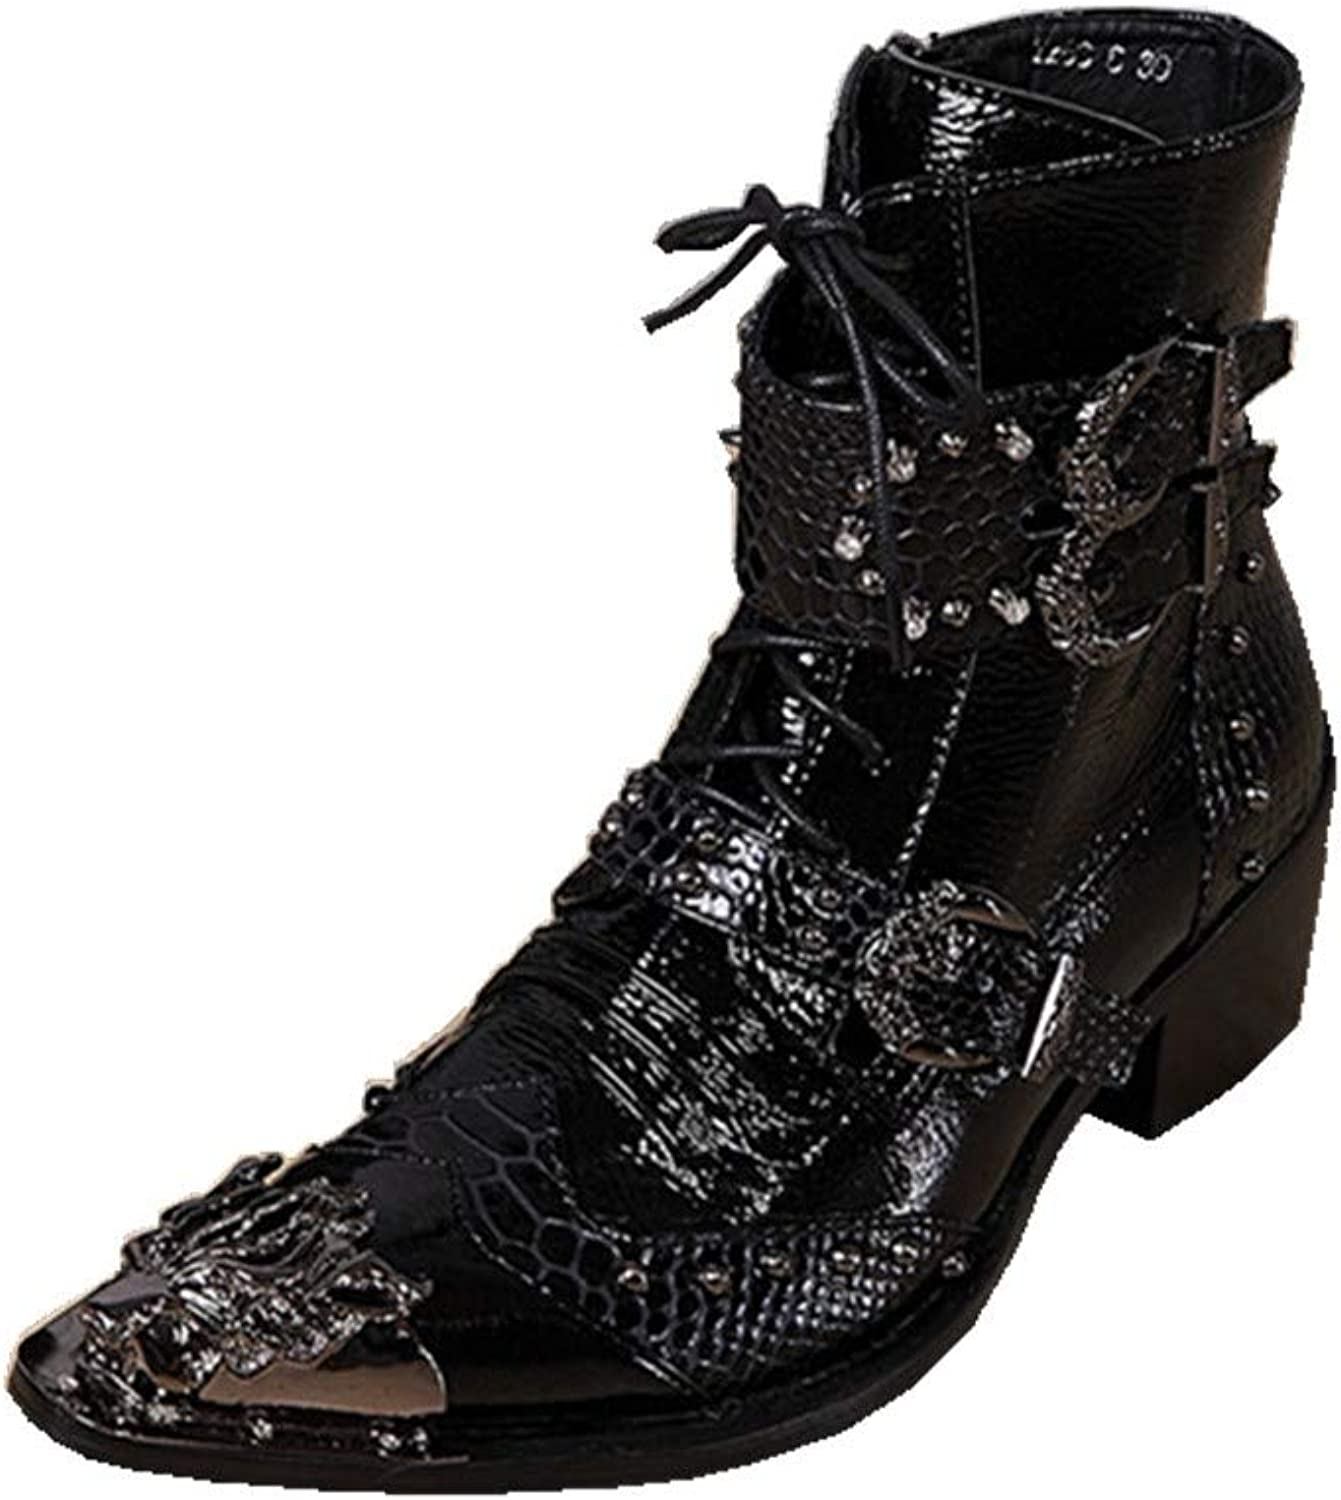 Men's Western Cowboy Ankle Boots Leather Black Lace up Buckle Pointed Metal Toe shoes Formal Wedding Evening Party